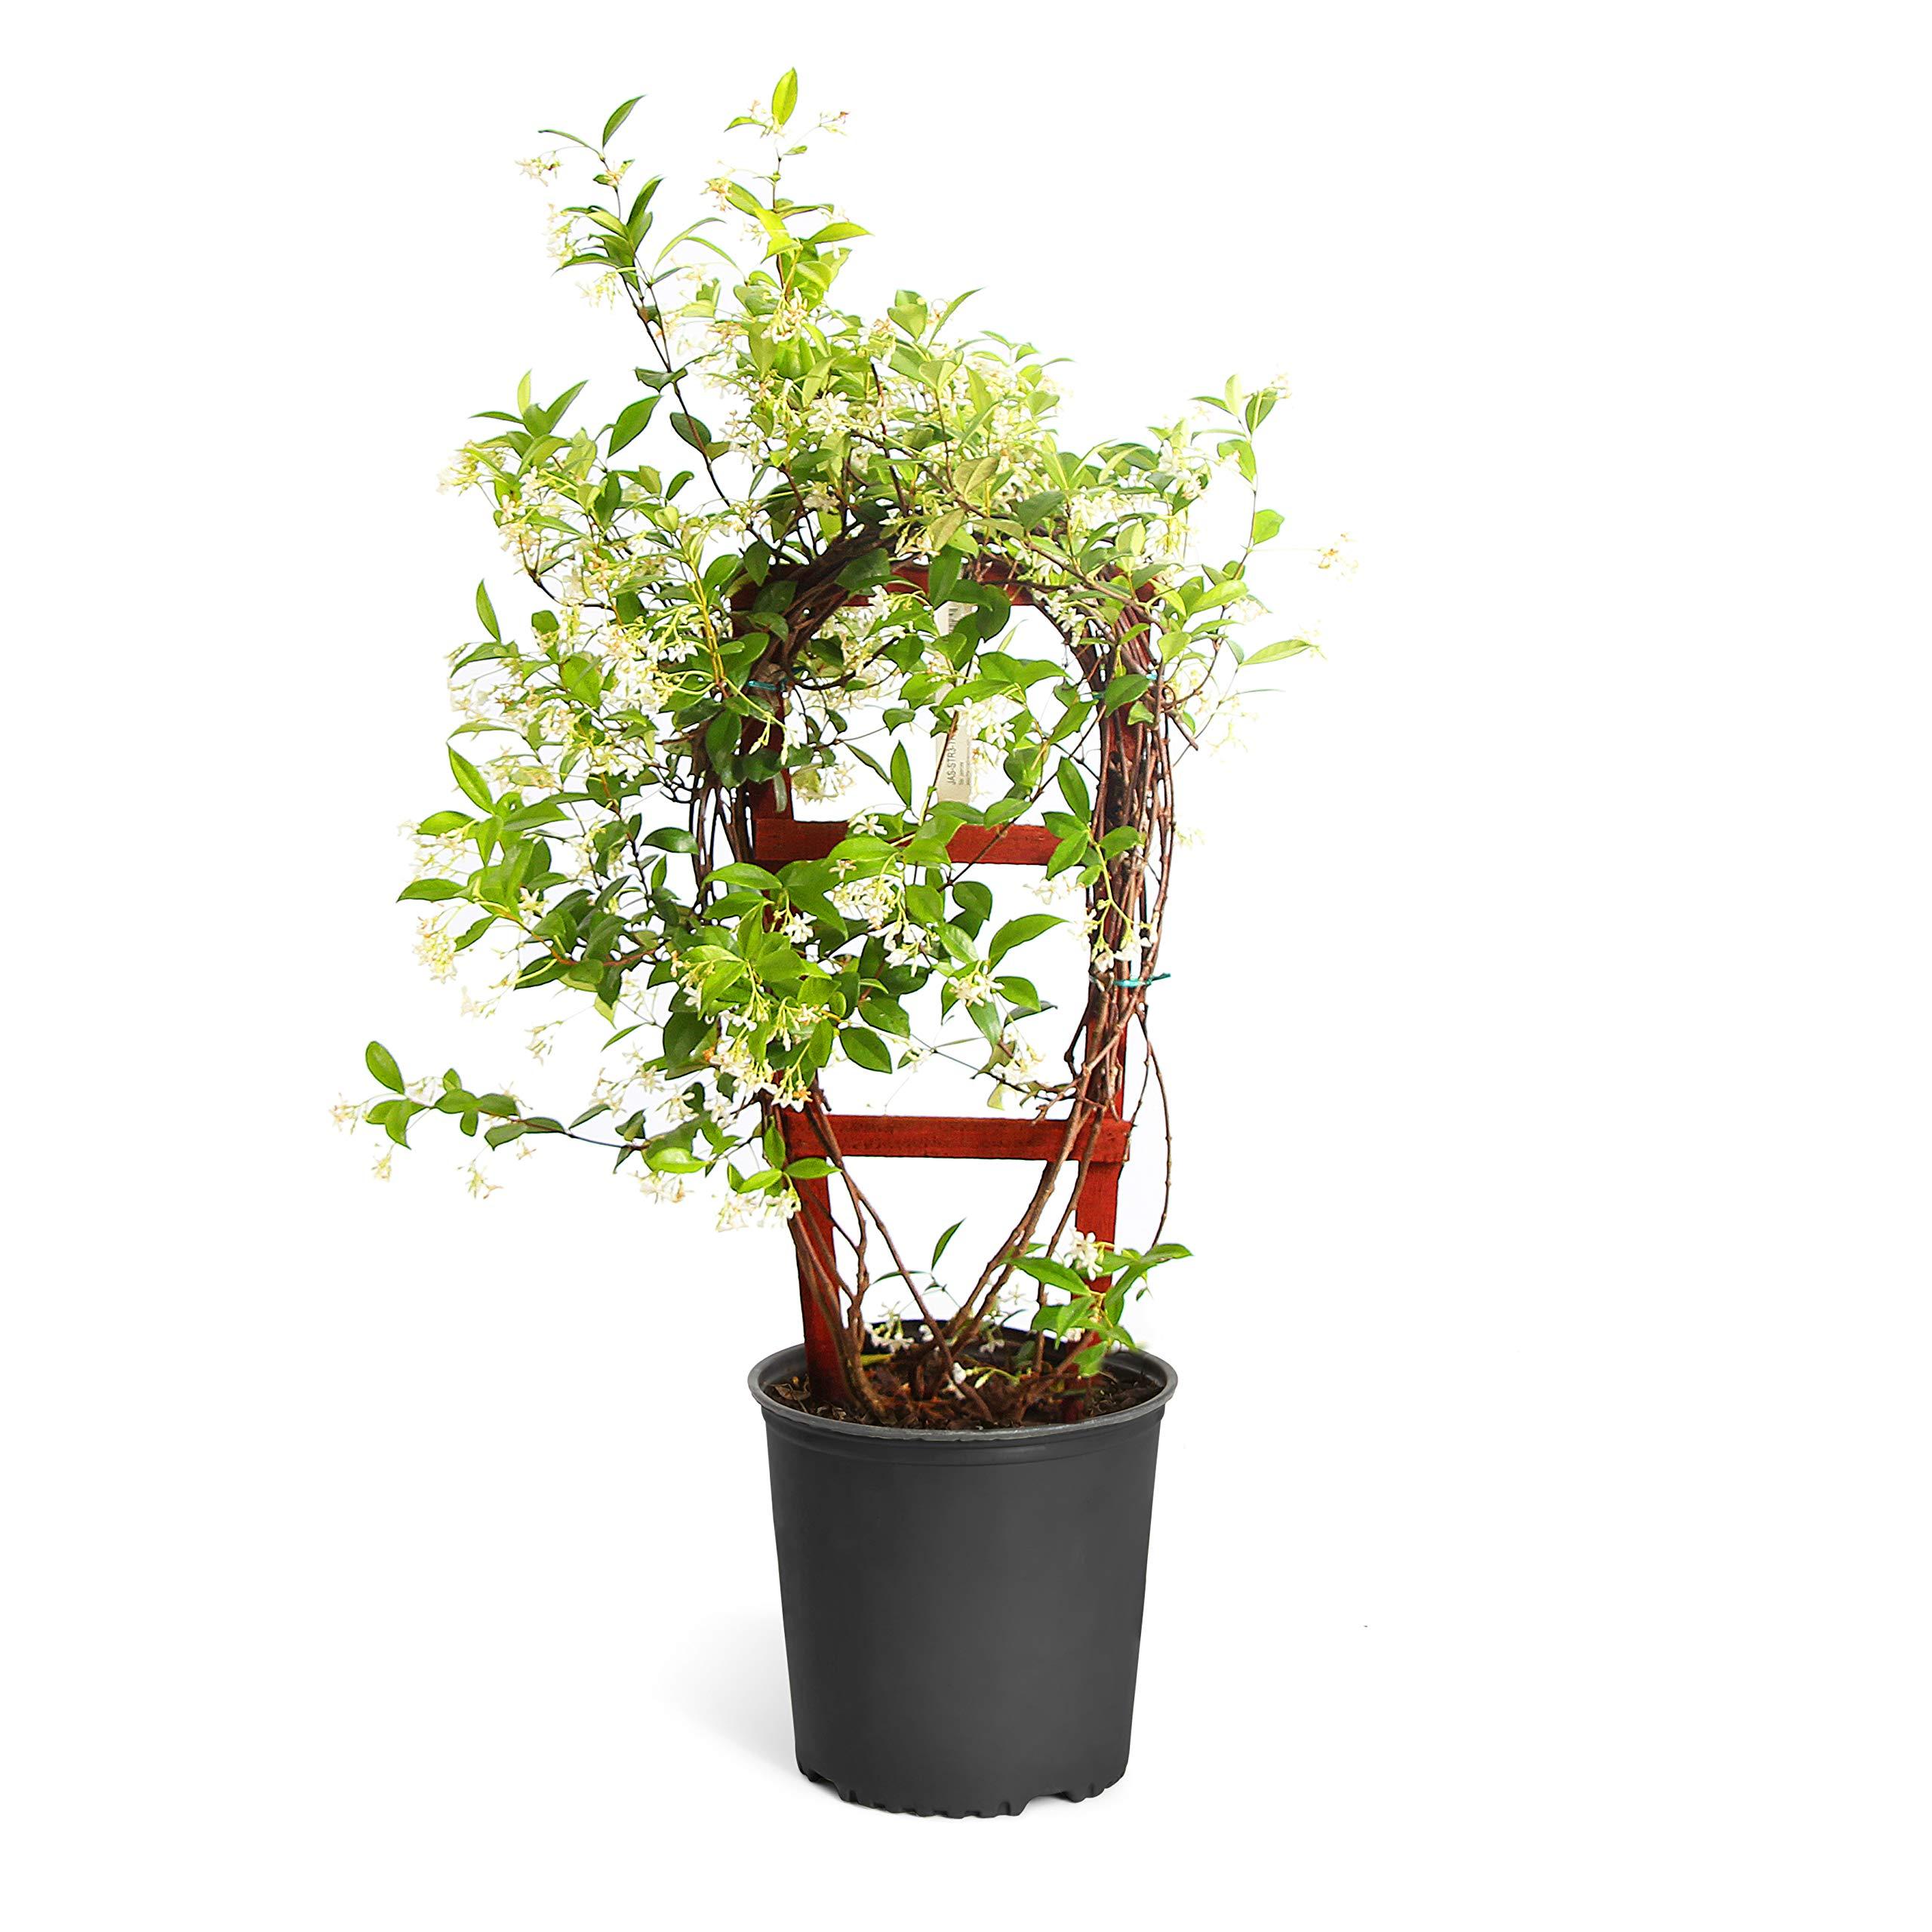 Star Jasmine - 3 Gallon with Trellis